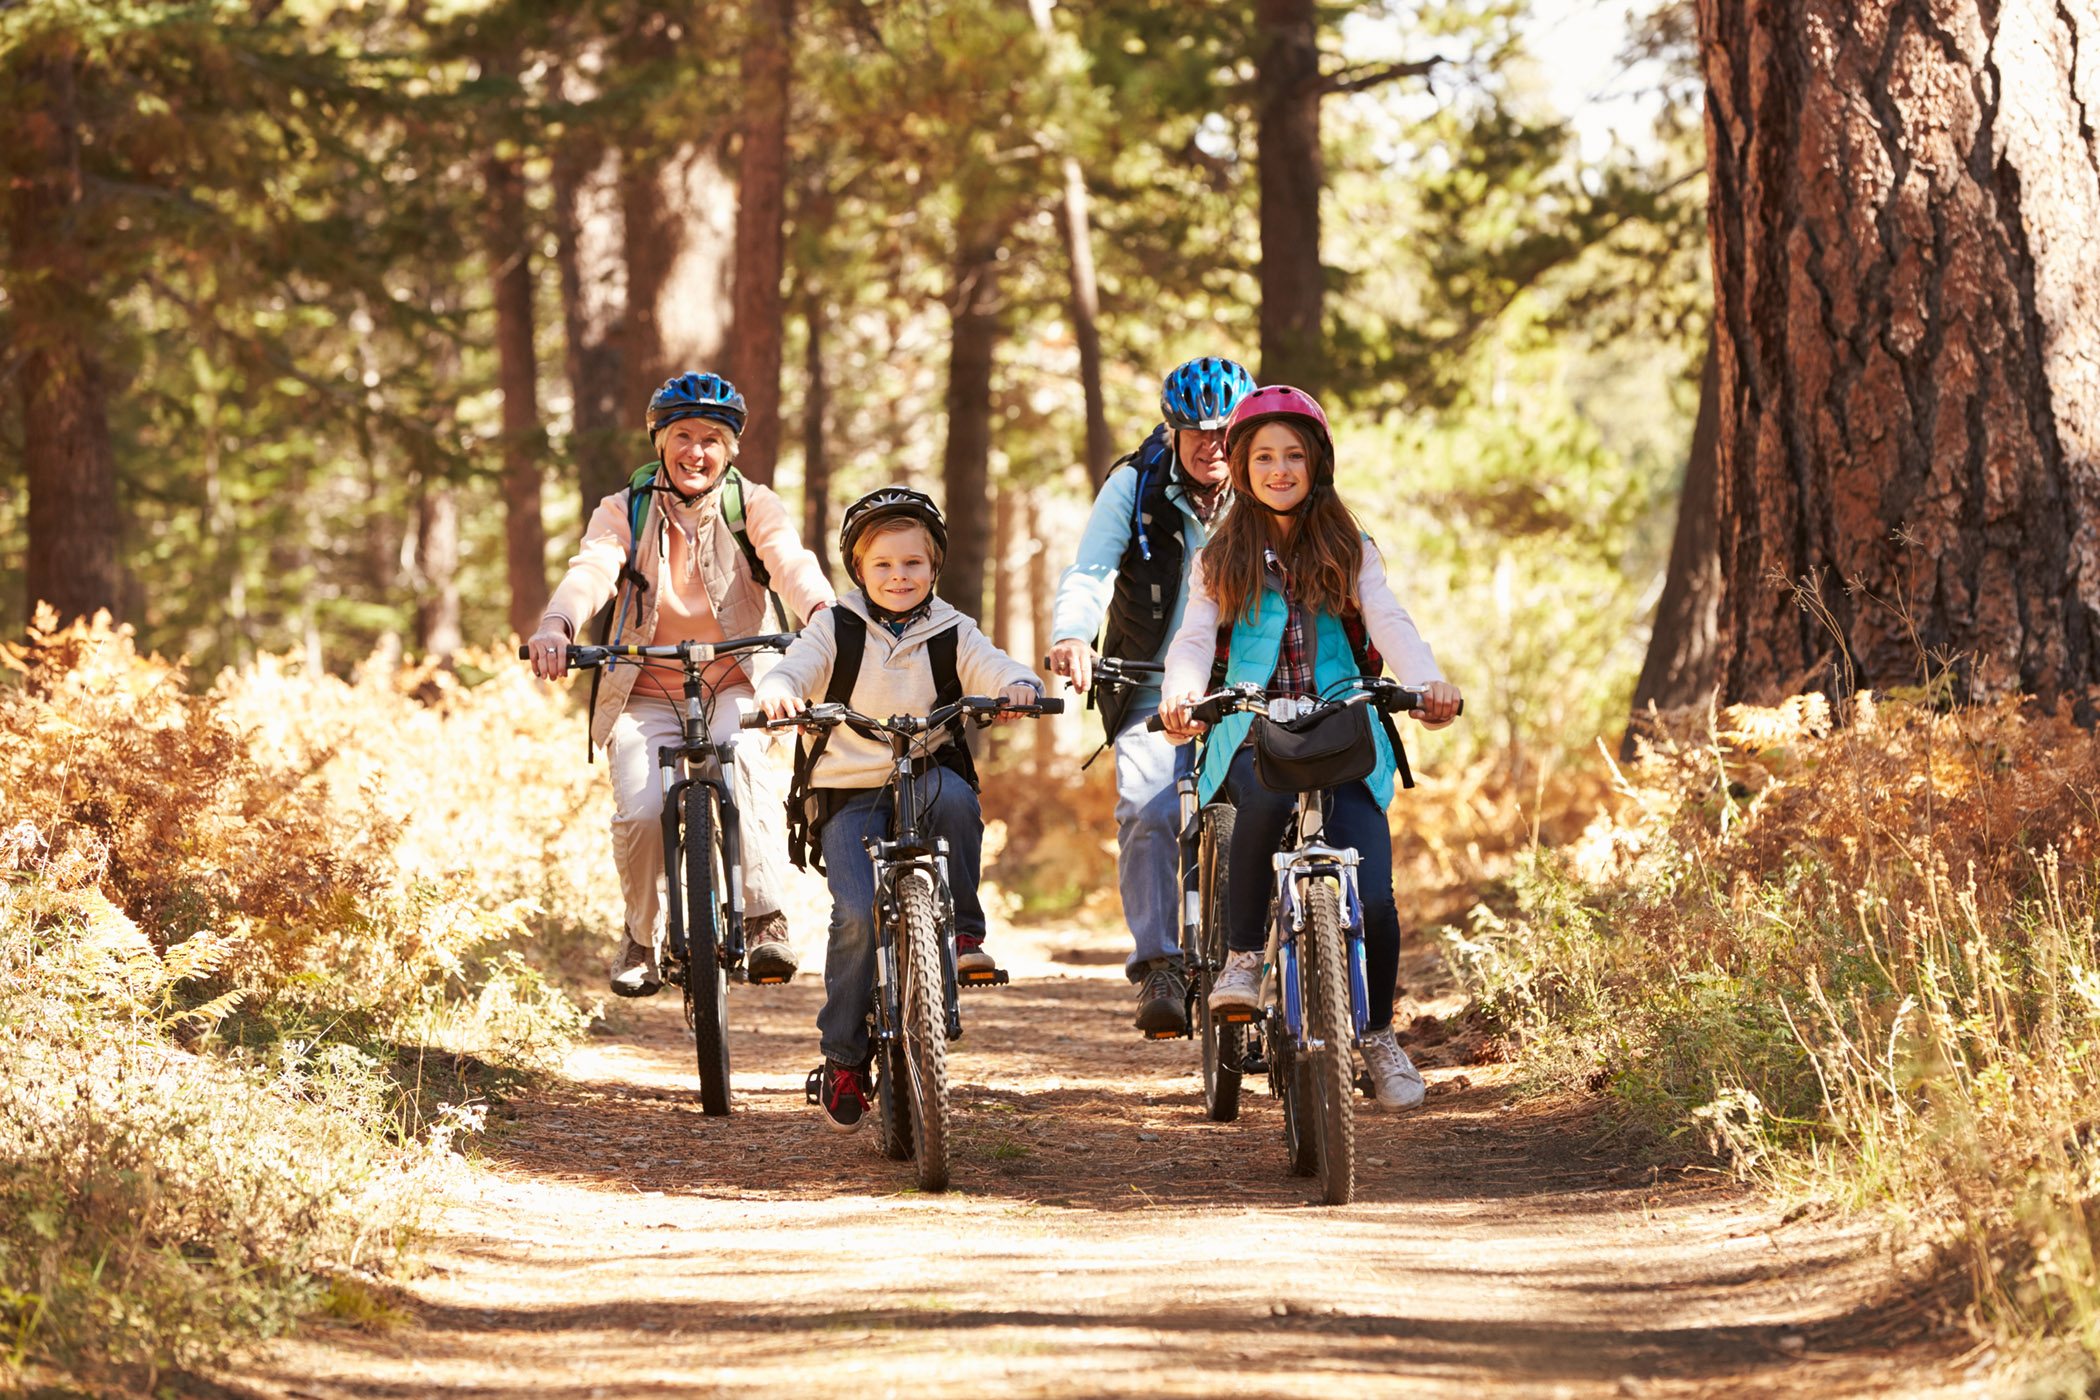 A happy family rides their mountain bikes together on a dirt trail in the woods